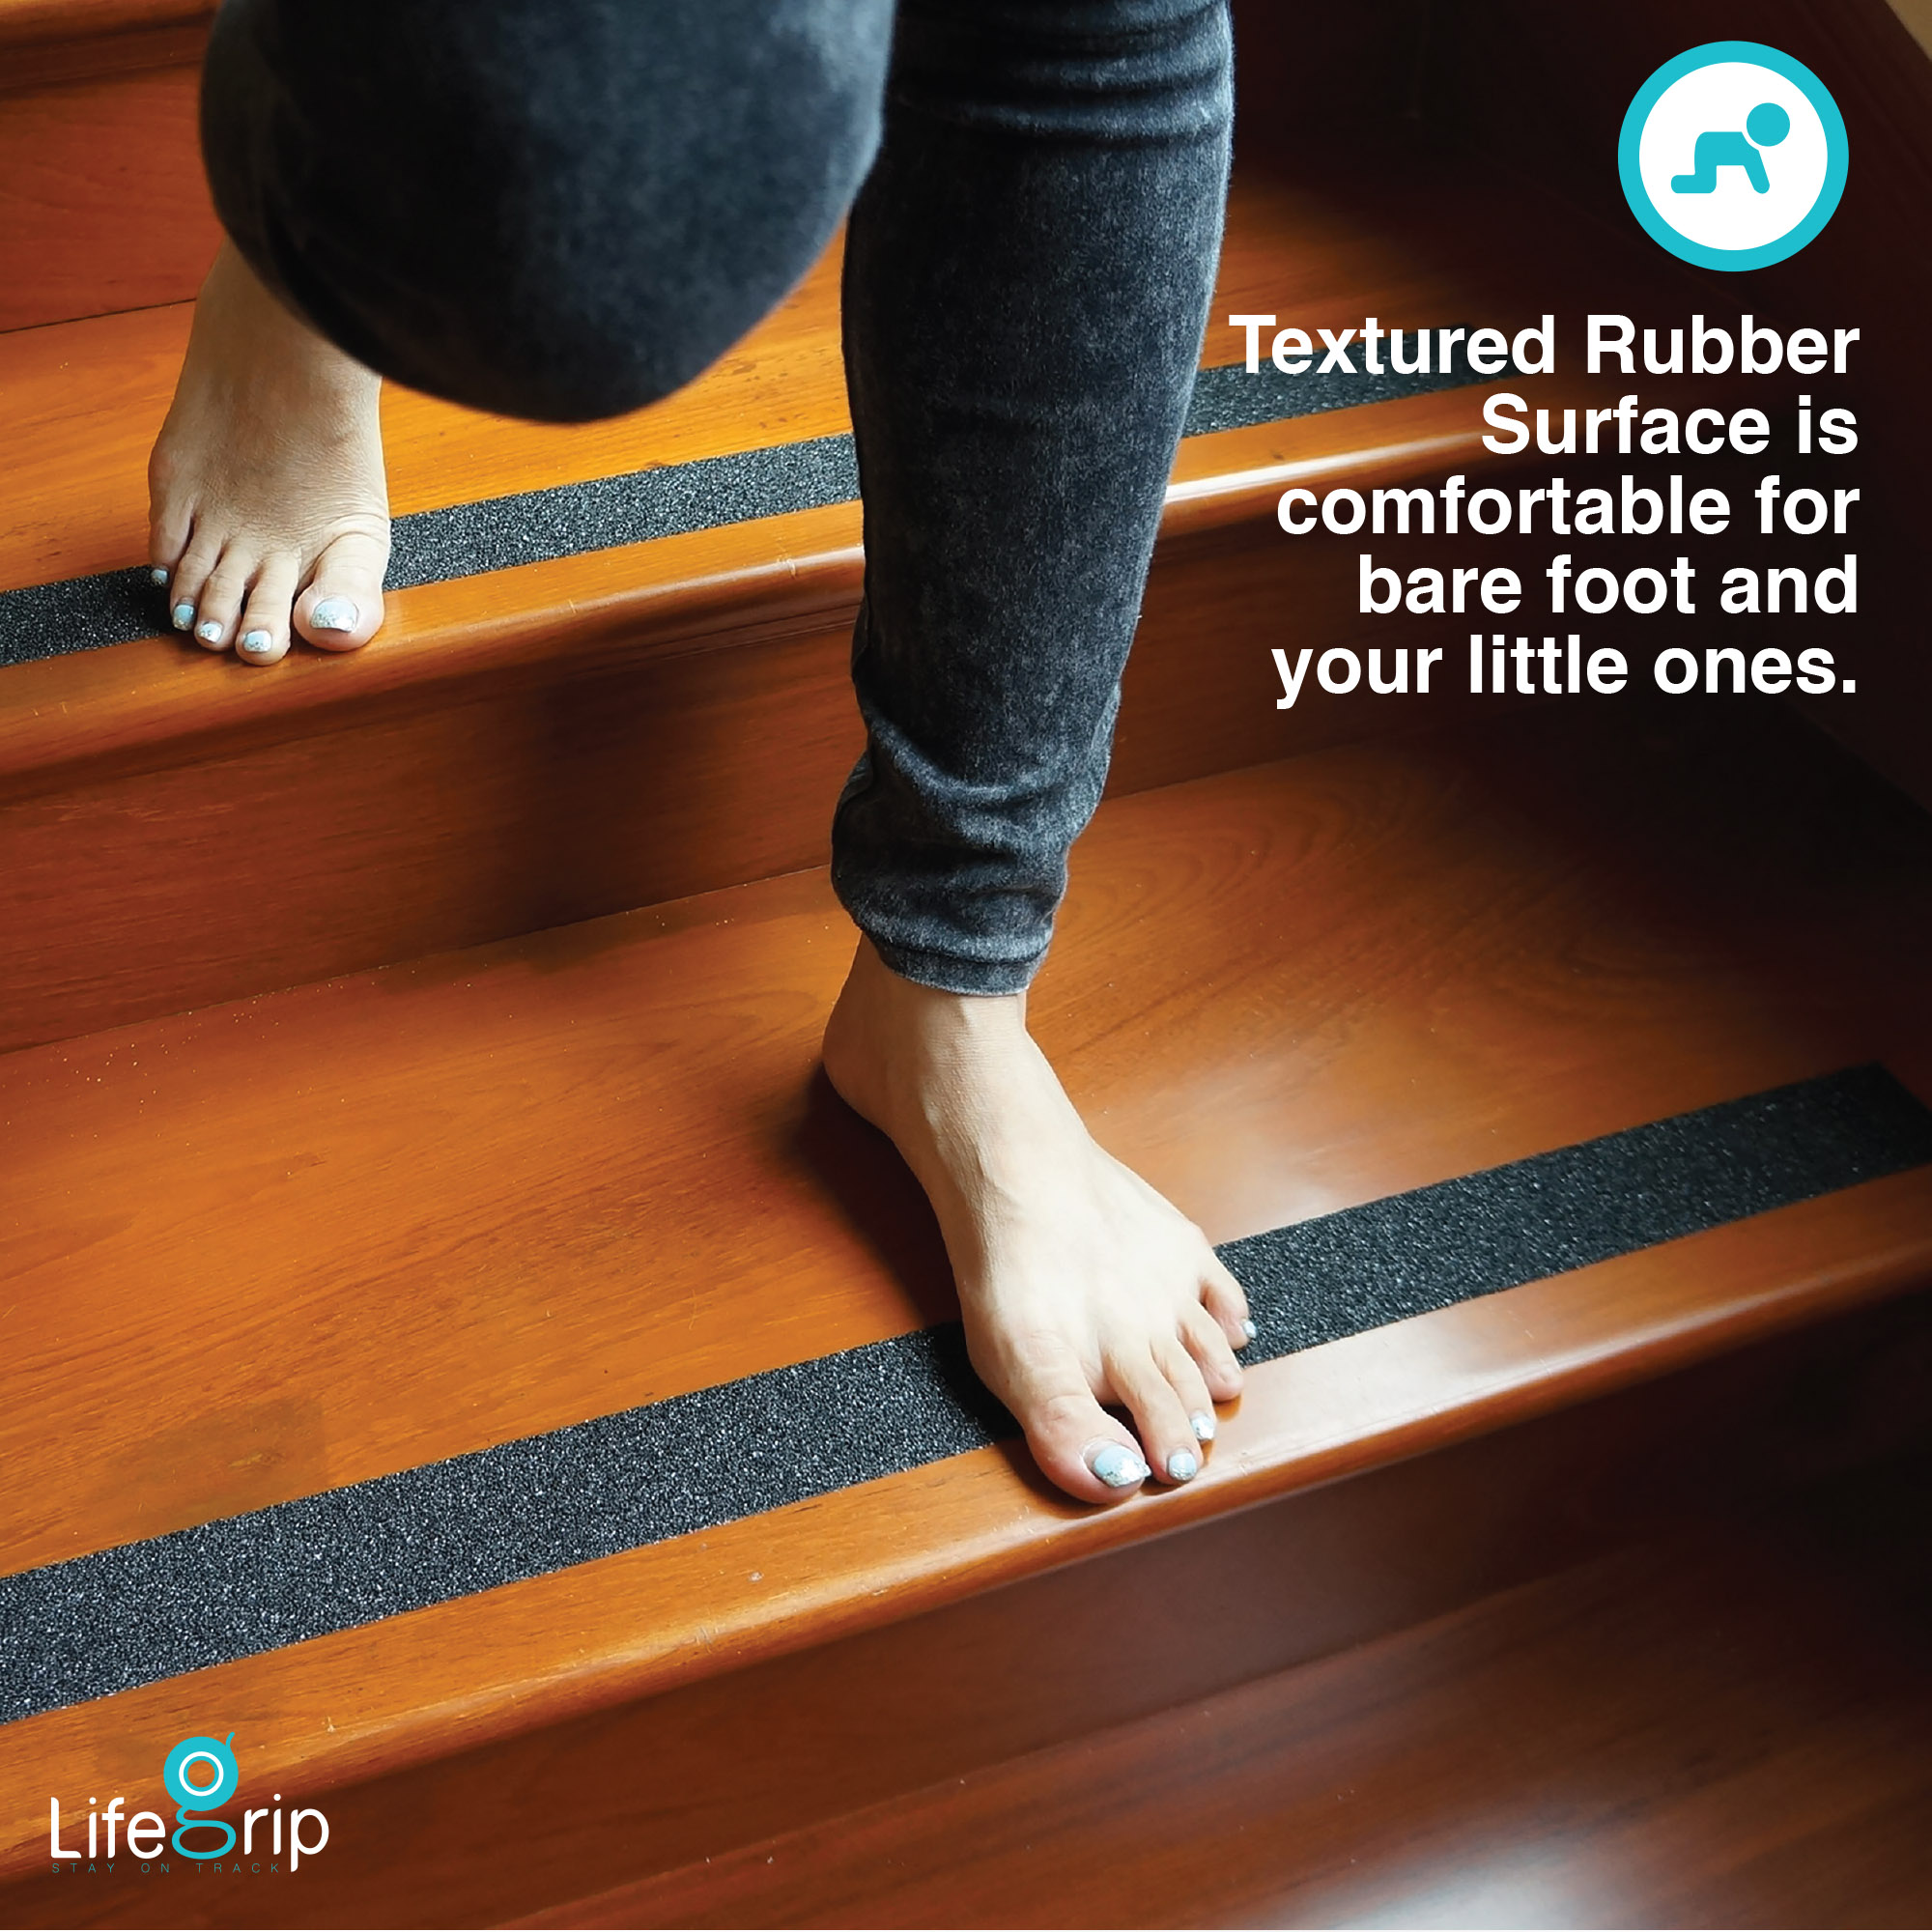 Textured Rubber Surface Black 1 X 15 Non Slip Stair Tread LifeGrip Anti Slip Safety Tape Comfortable for Bare Foot